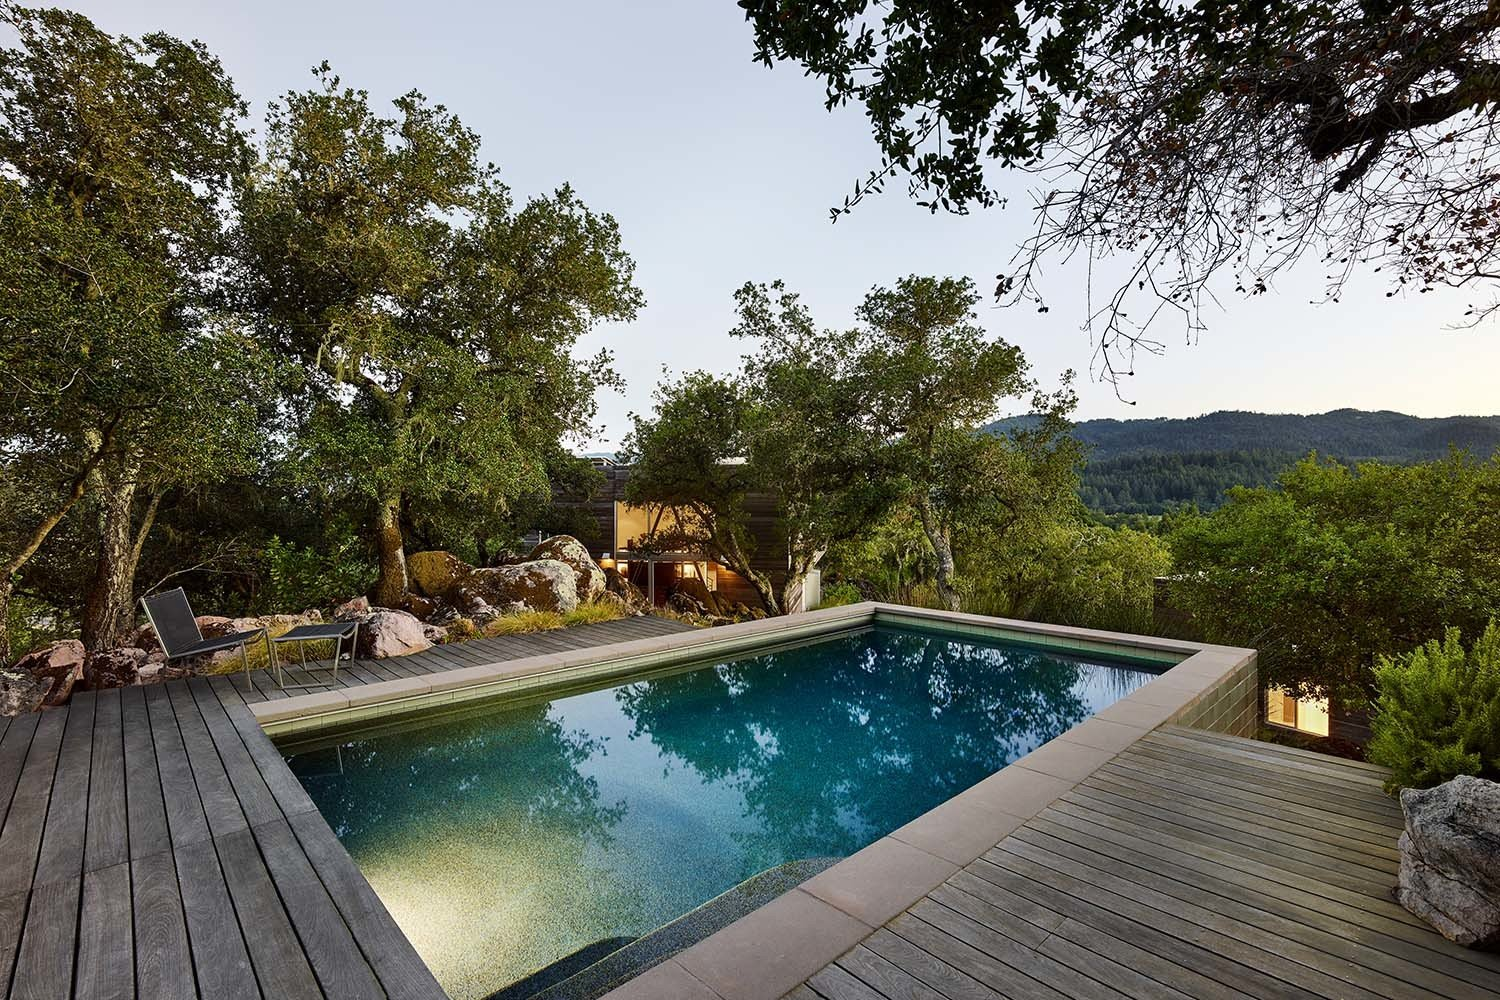 Outdoor, Infinity Pools, Tubs, Shower, Trees, Shrubs, Decking Patio, Porch, Deck, Wood Patio, Porch, Deck, and Boulders  Photo 11 of 14 in Discover a Nature-Immersed Retreat For Sale in the Heart of Wine Country